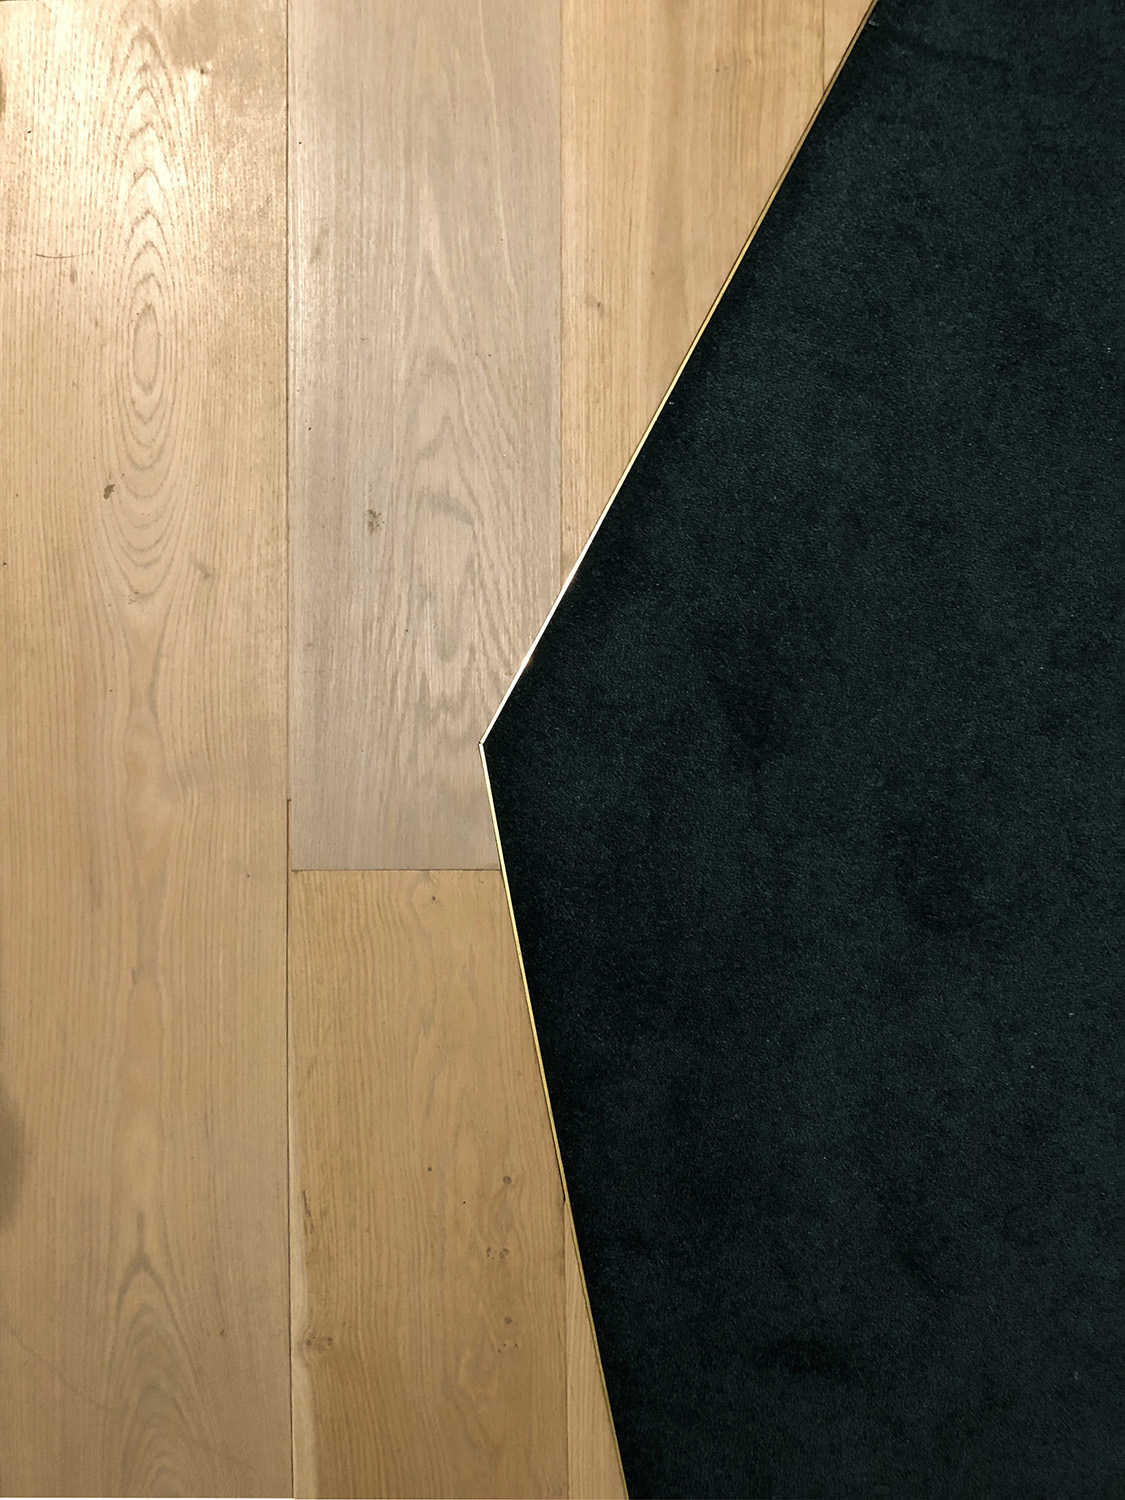 Detail: timber floor and green carpet Forte Architetti